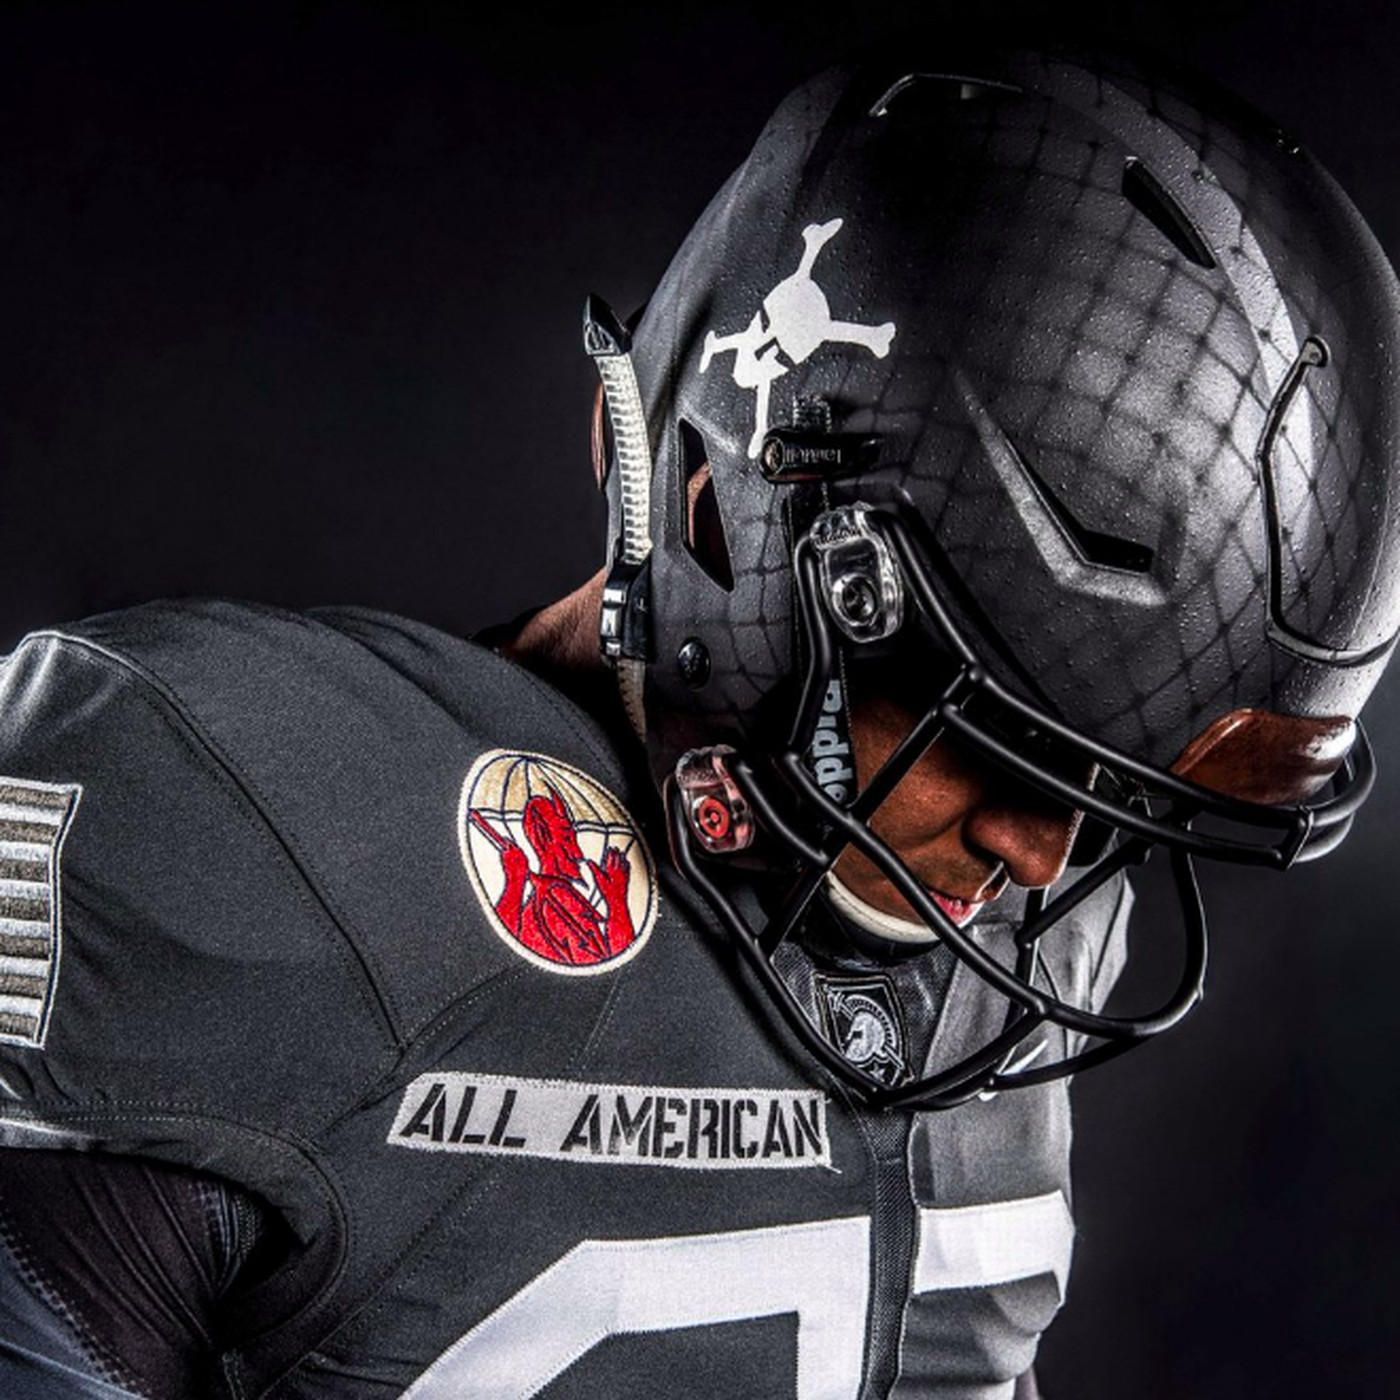 866f21b4a Army s new uniforms for 2016 Navy game are badass tributes to World War II  paratroopers - SBNation.com